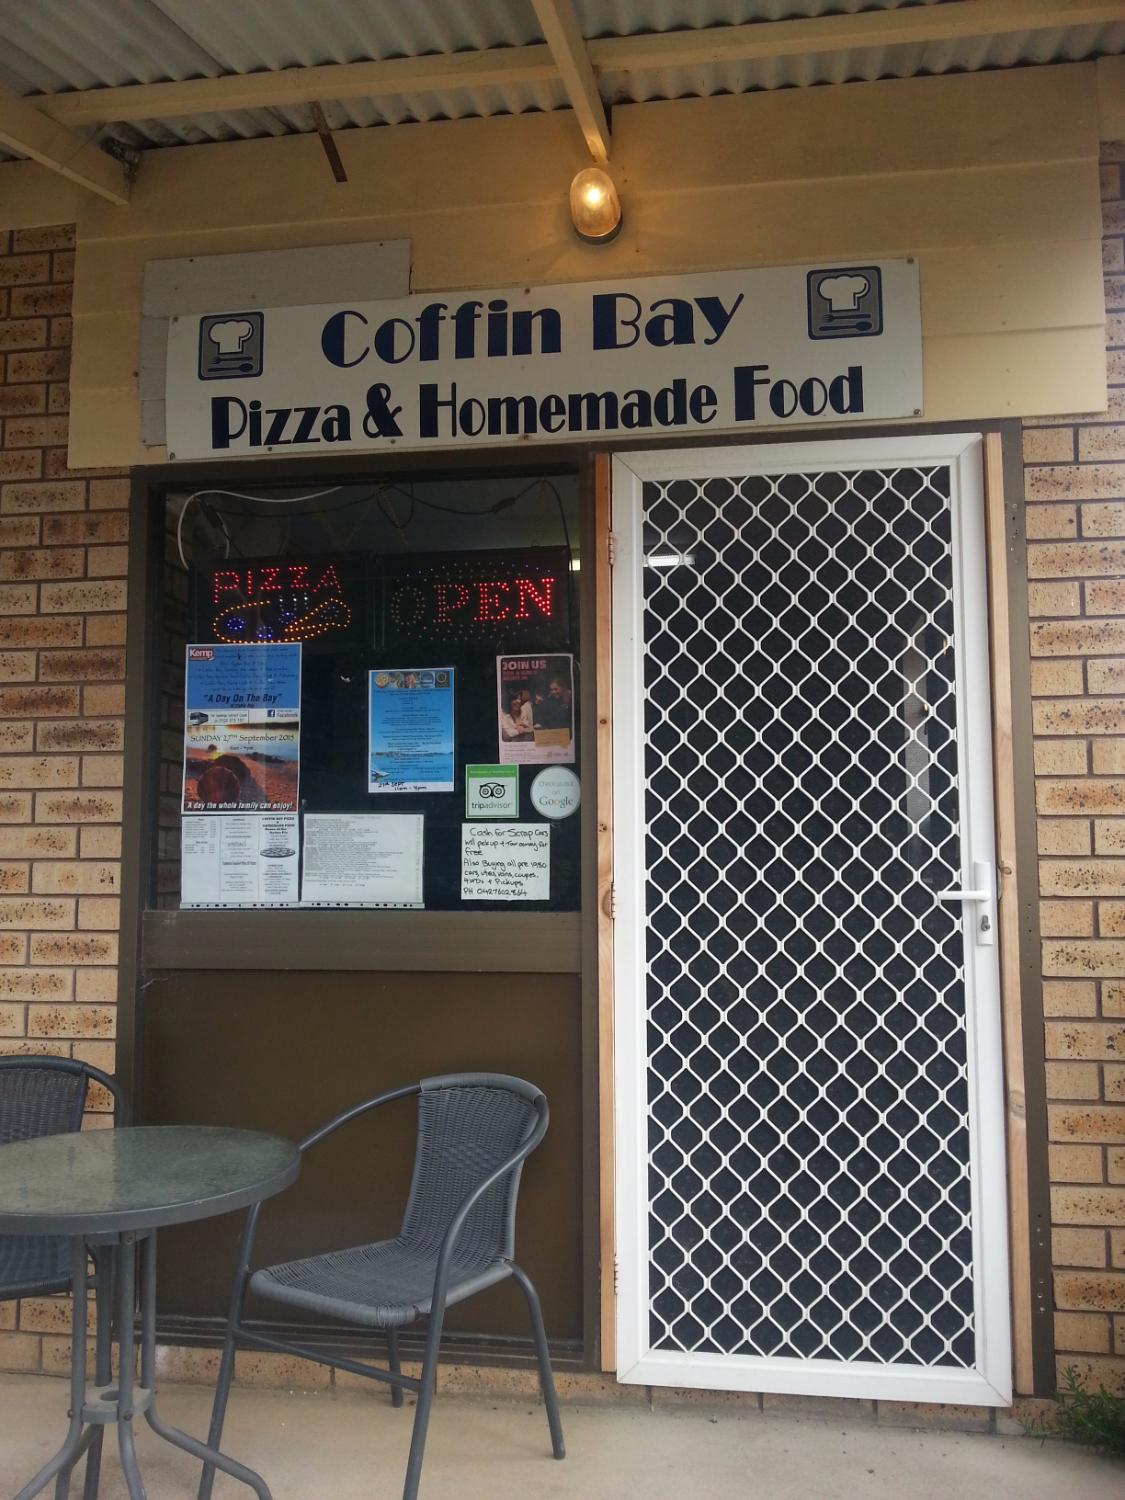 Coffin Bay Pizza & Homemade Food